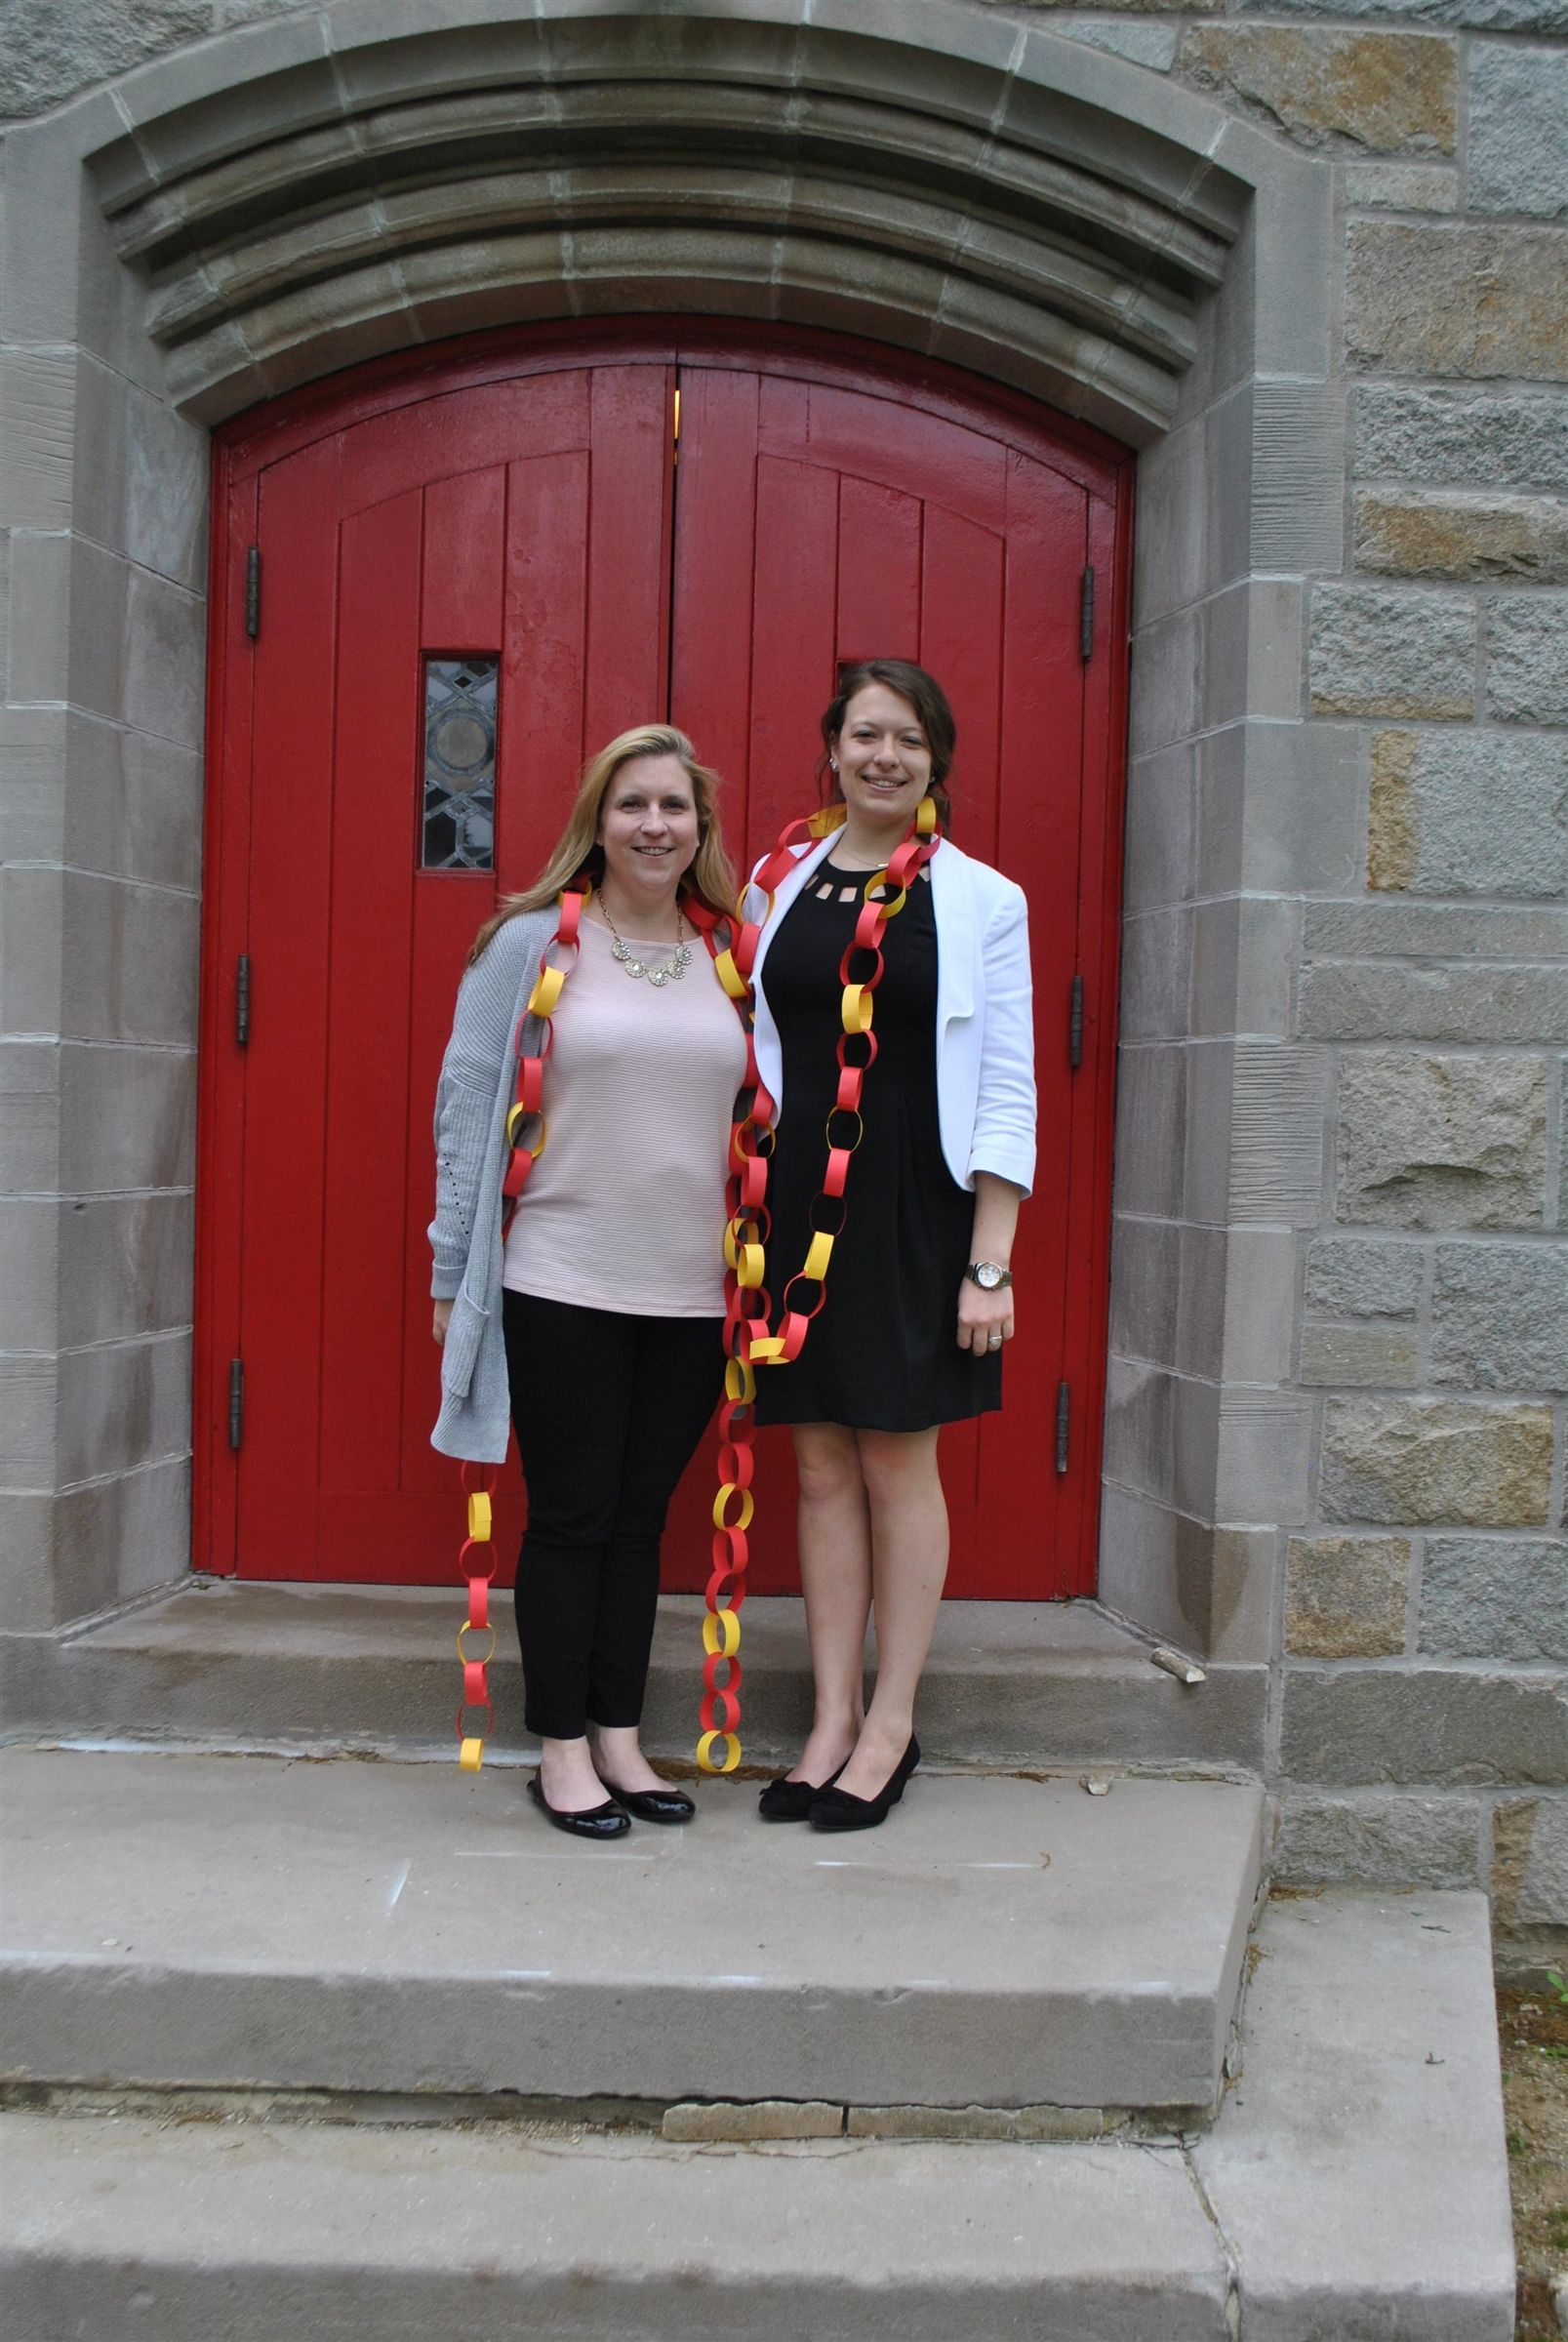 Greetings from the Red Doors of Muhlenberg - staff Carolyn Davis Hedges '97 and Marissa Zondag '09!